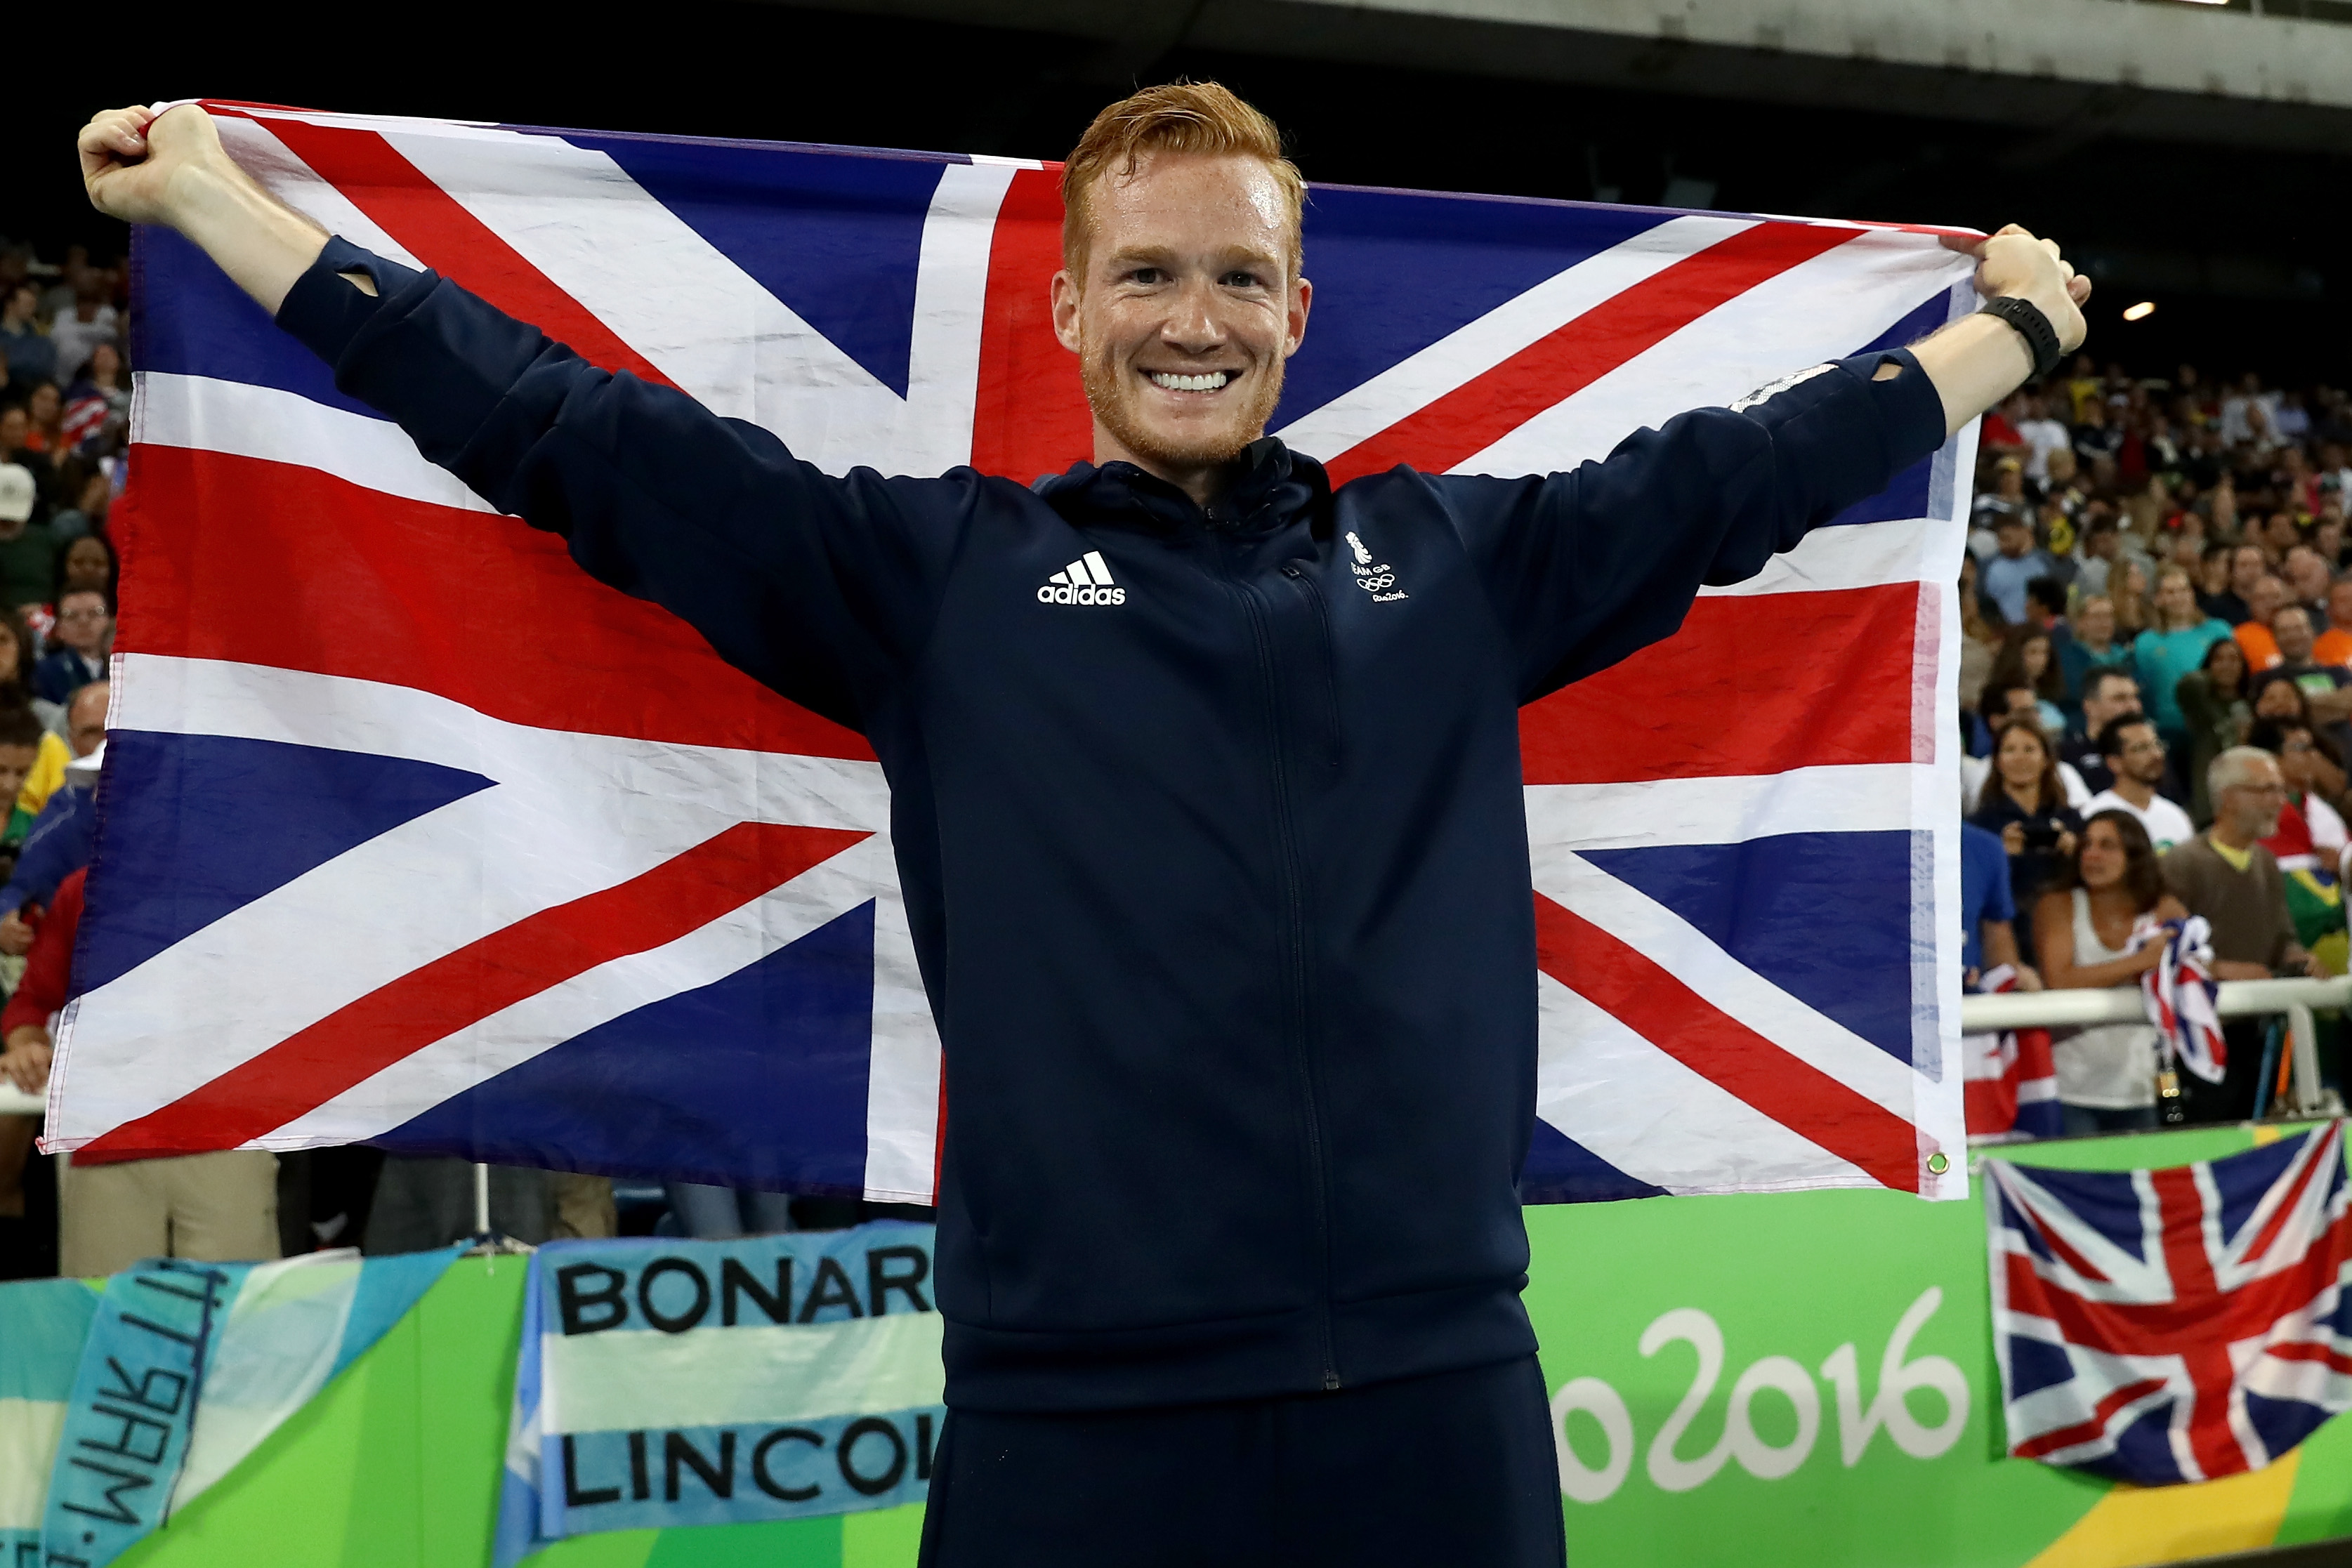 RIO DE JANEIRO, BRAZIL - AUGUST 13: Greg Rutherford of Great Britain celebrates after the Men's Long Jump Final on Day 8 of the Rio 2016 Olympic Games at the Olympic Stadium on August 13, 2016 in Rio de Janeiro, Brazil. (Photo by Alexander Hassenstein/Getty Images)